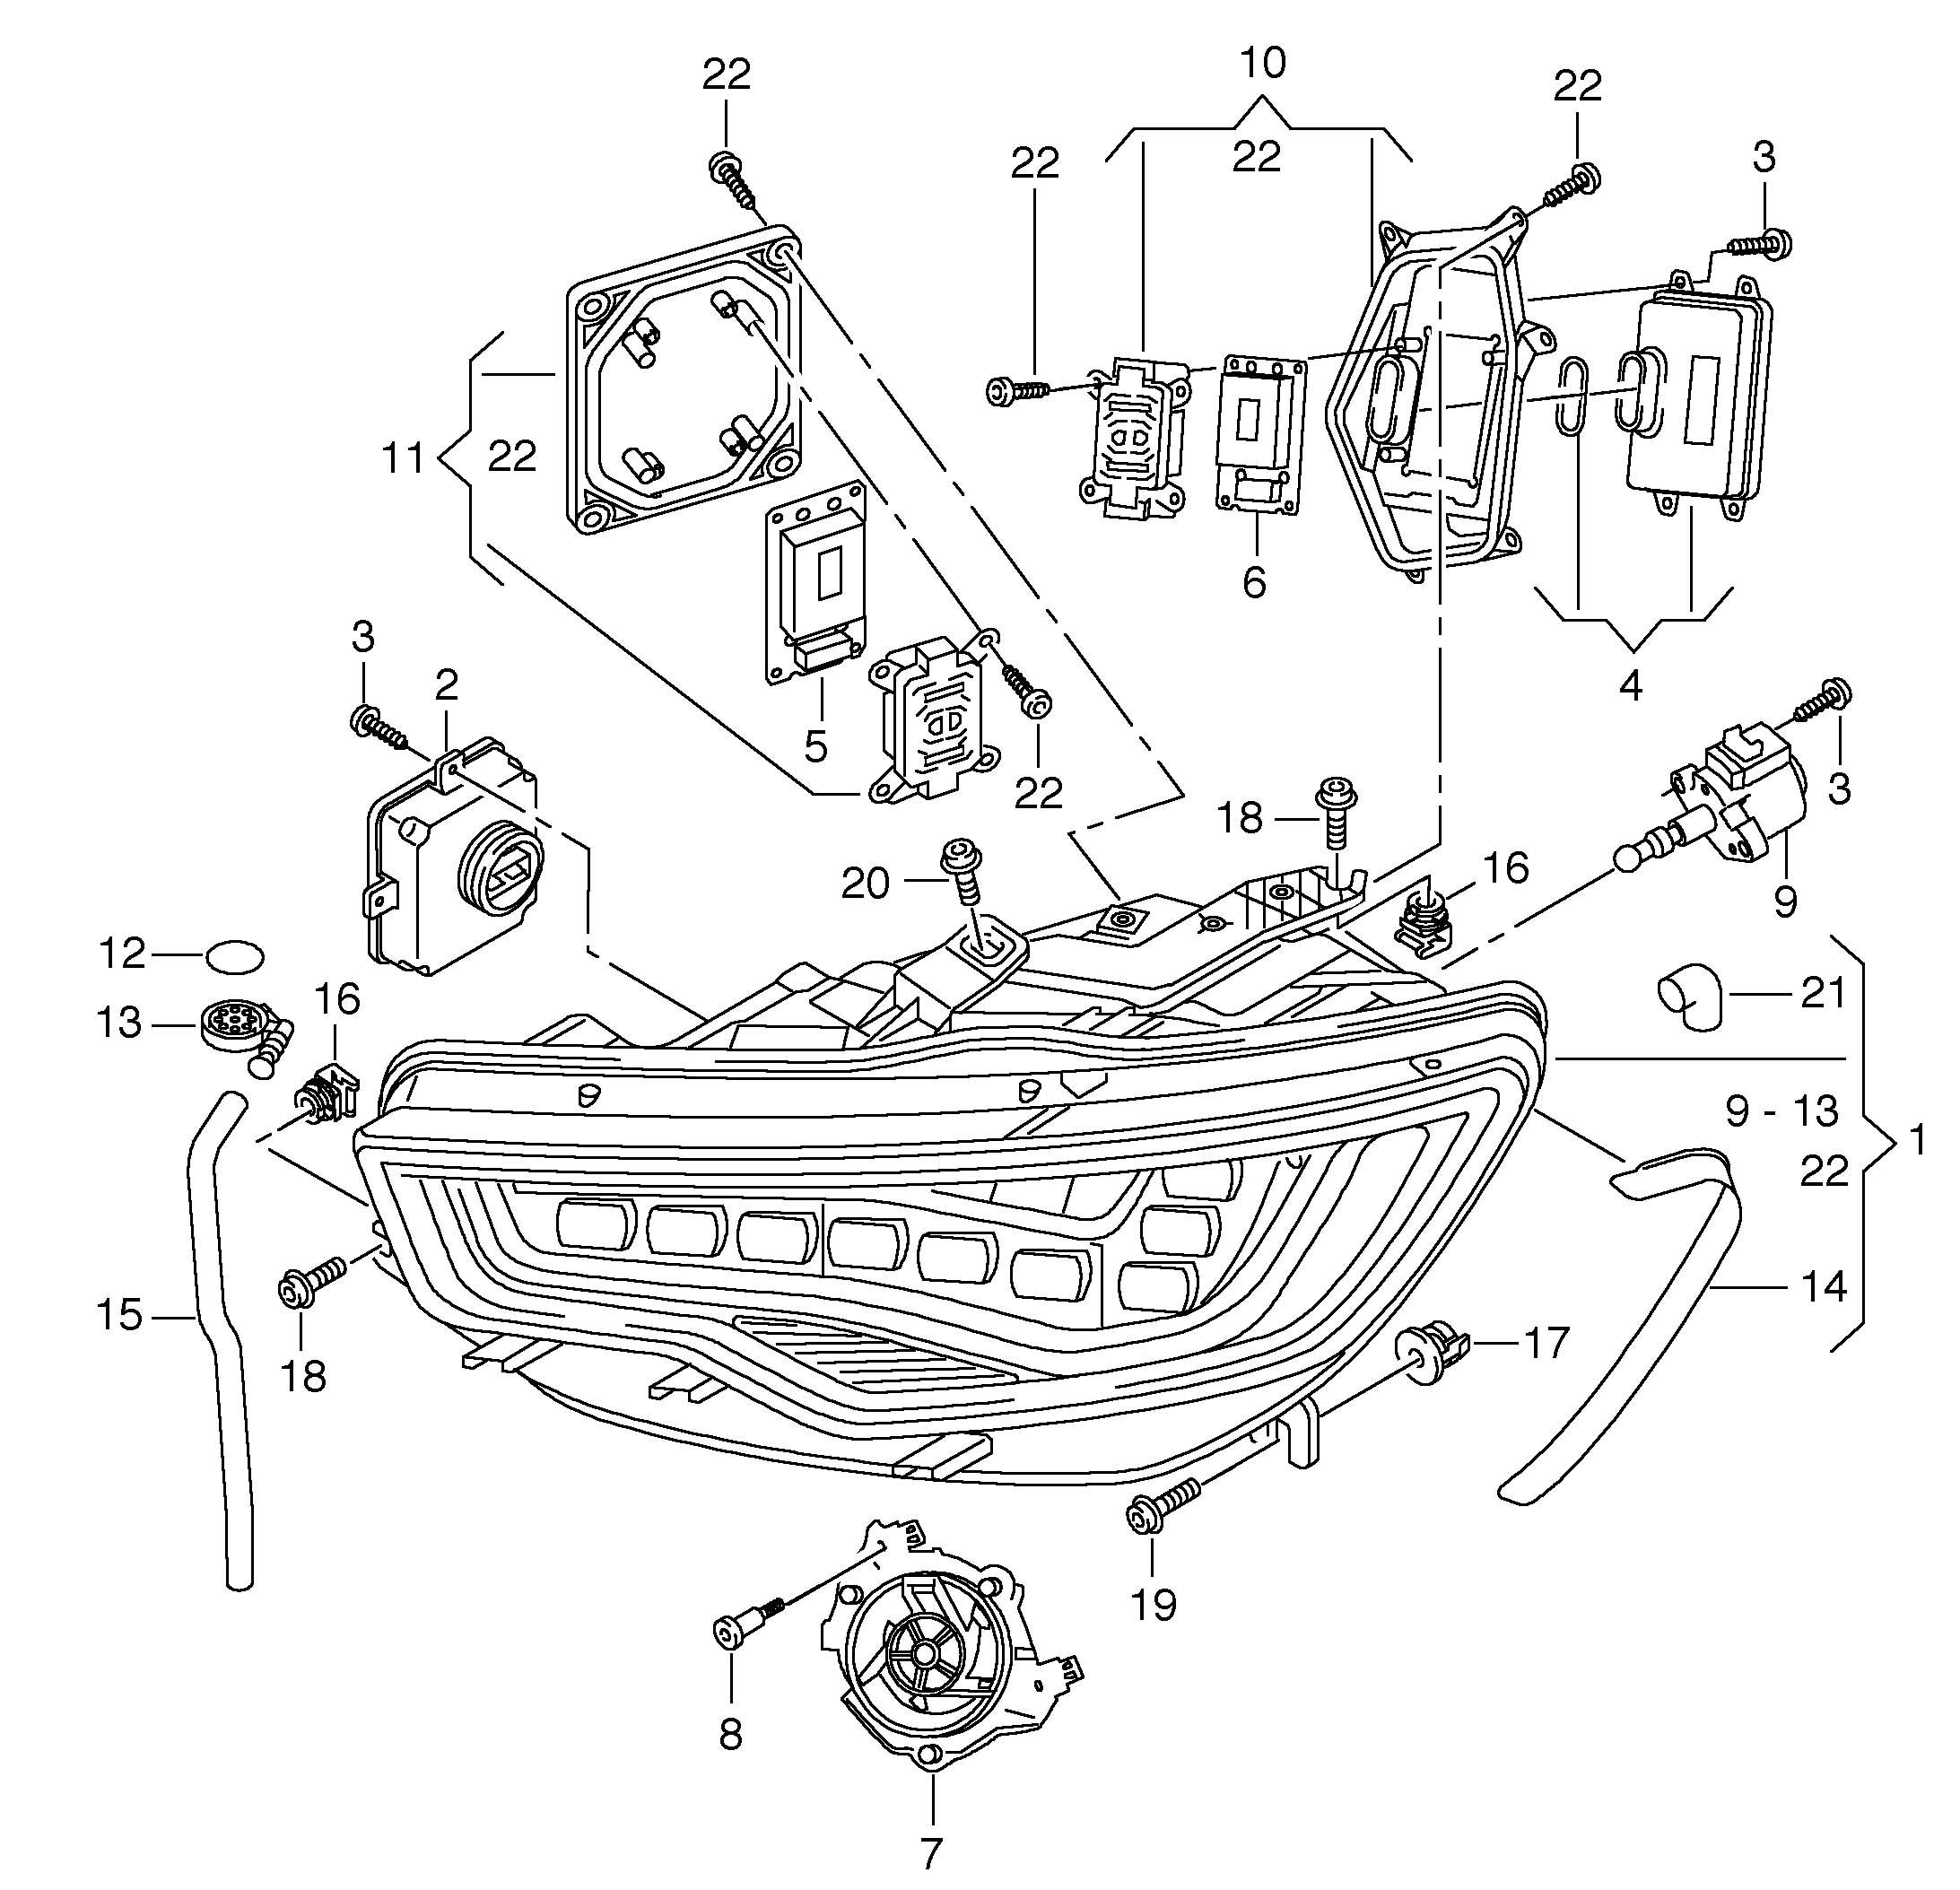 hight resolution of image result for audi a7 2012 led headlight wiring diagram